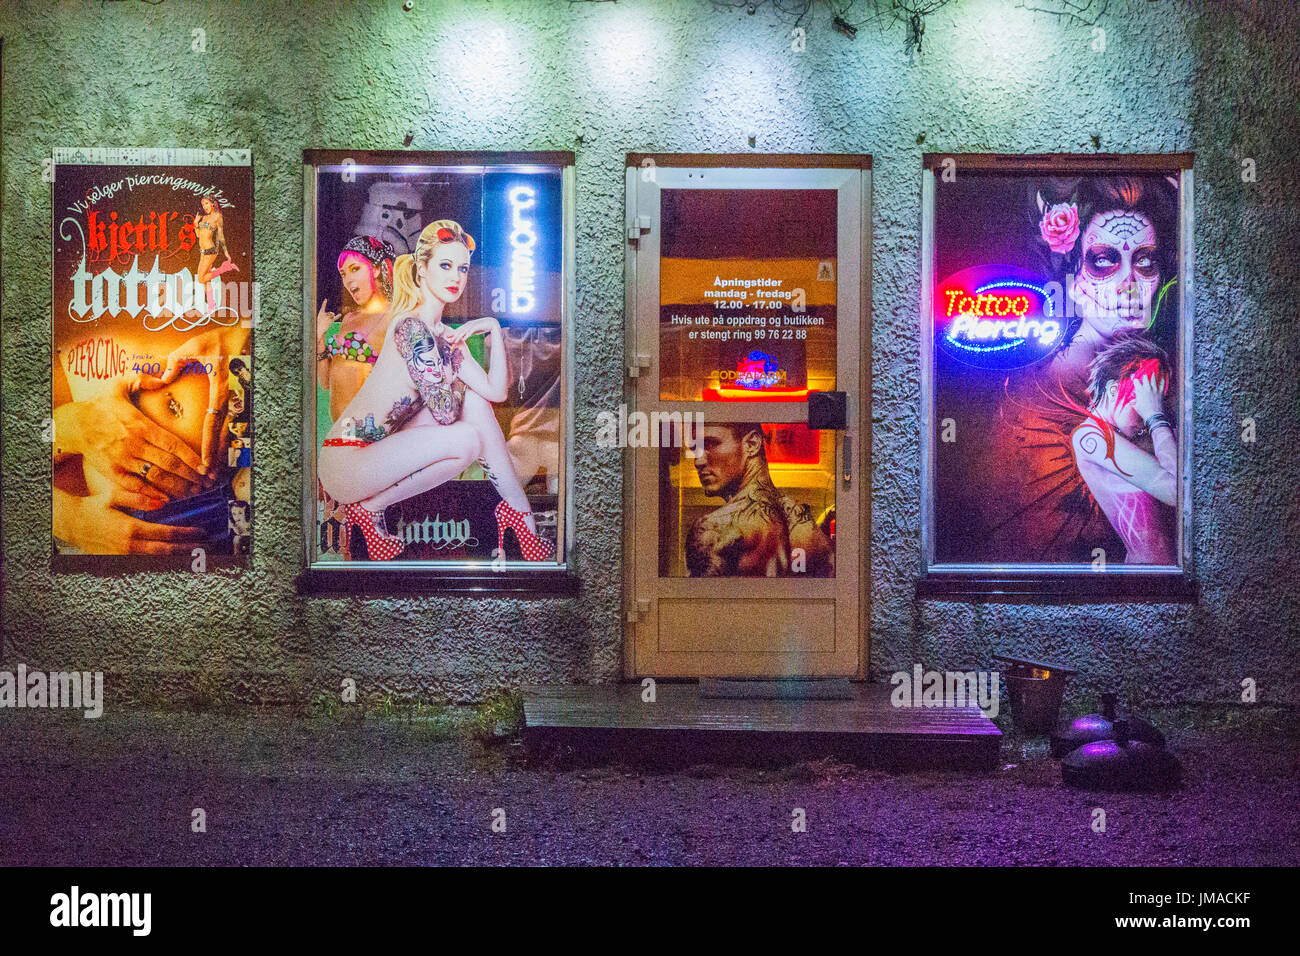 Kjetils Tattoo Studio by night in Rørvik, Nord-Trøndelag County, Norway. - Stock Image